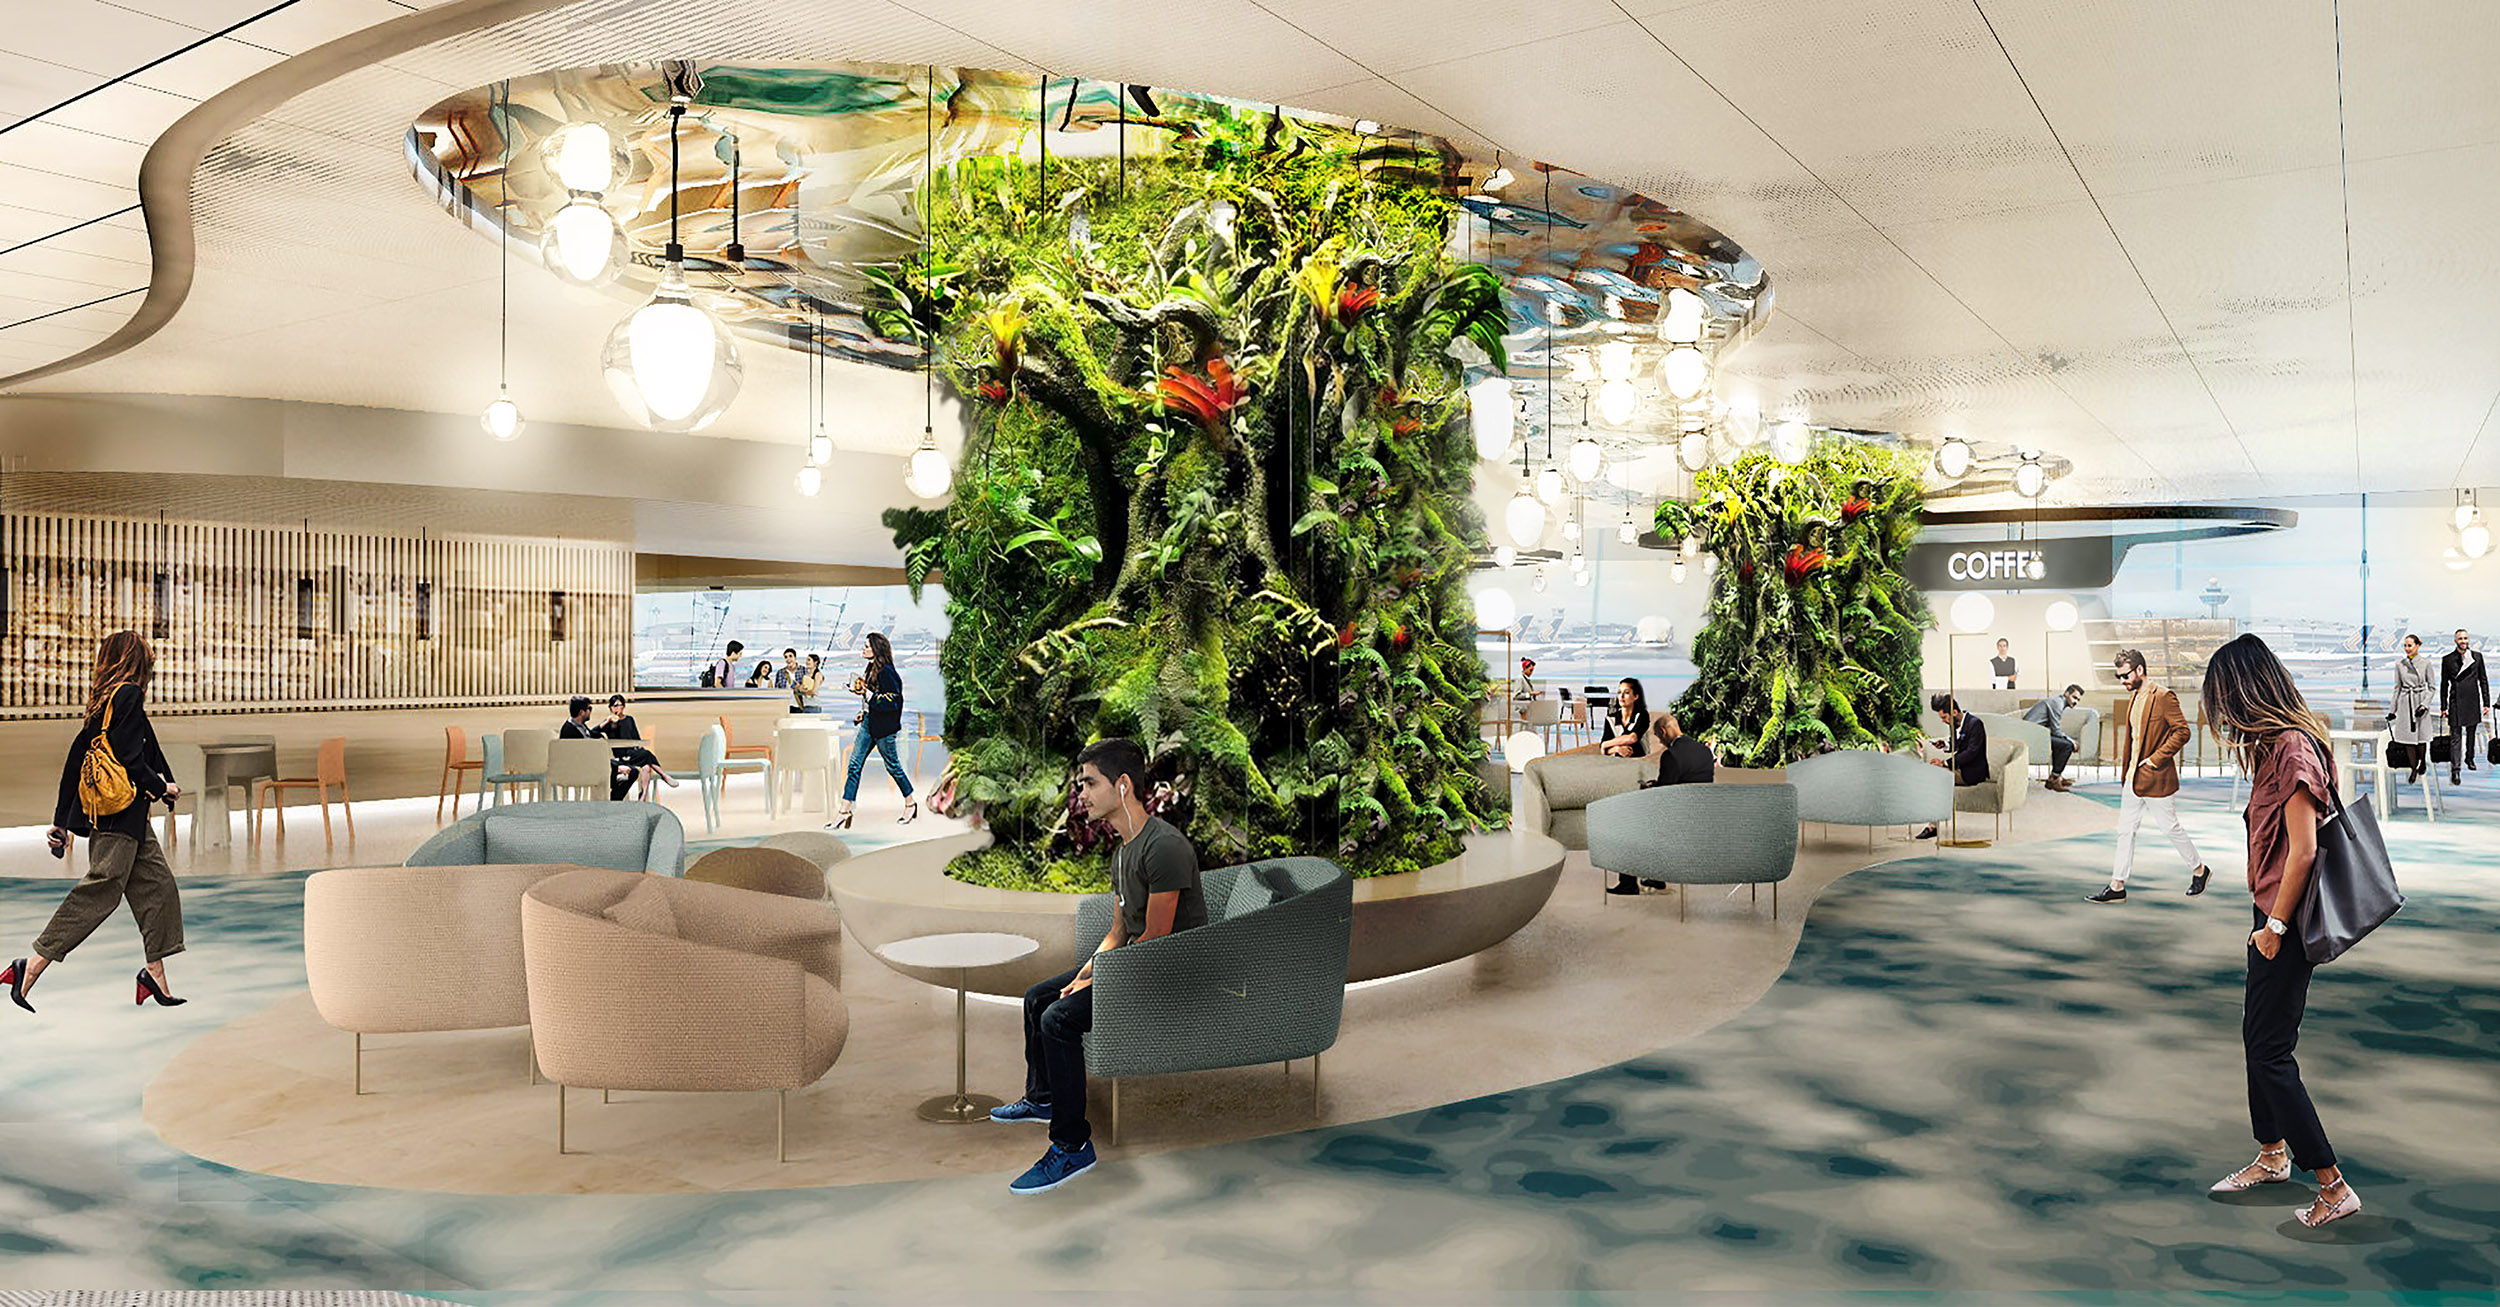 3B Departure Transit Hall - Dining in a Garden (CAG)